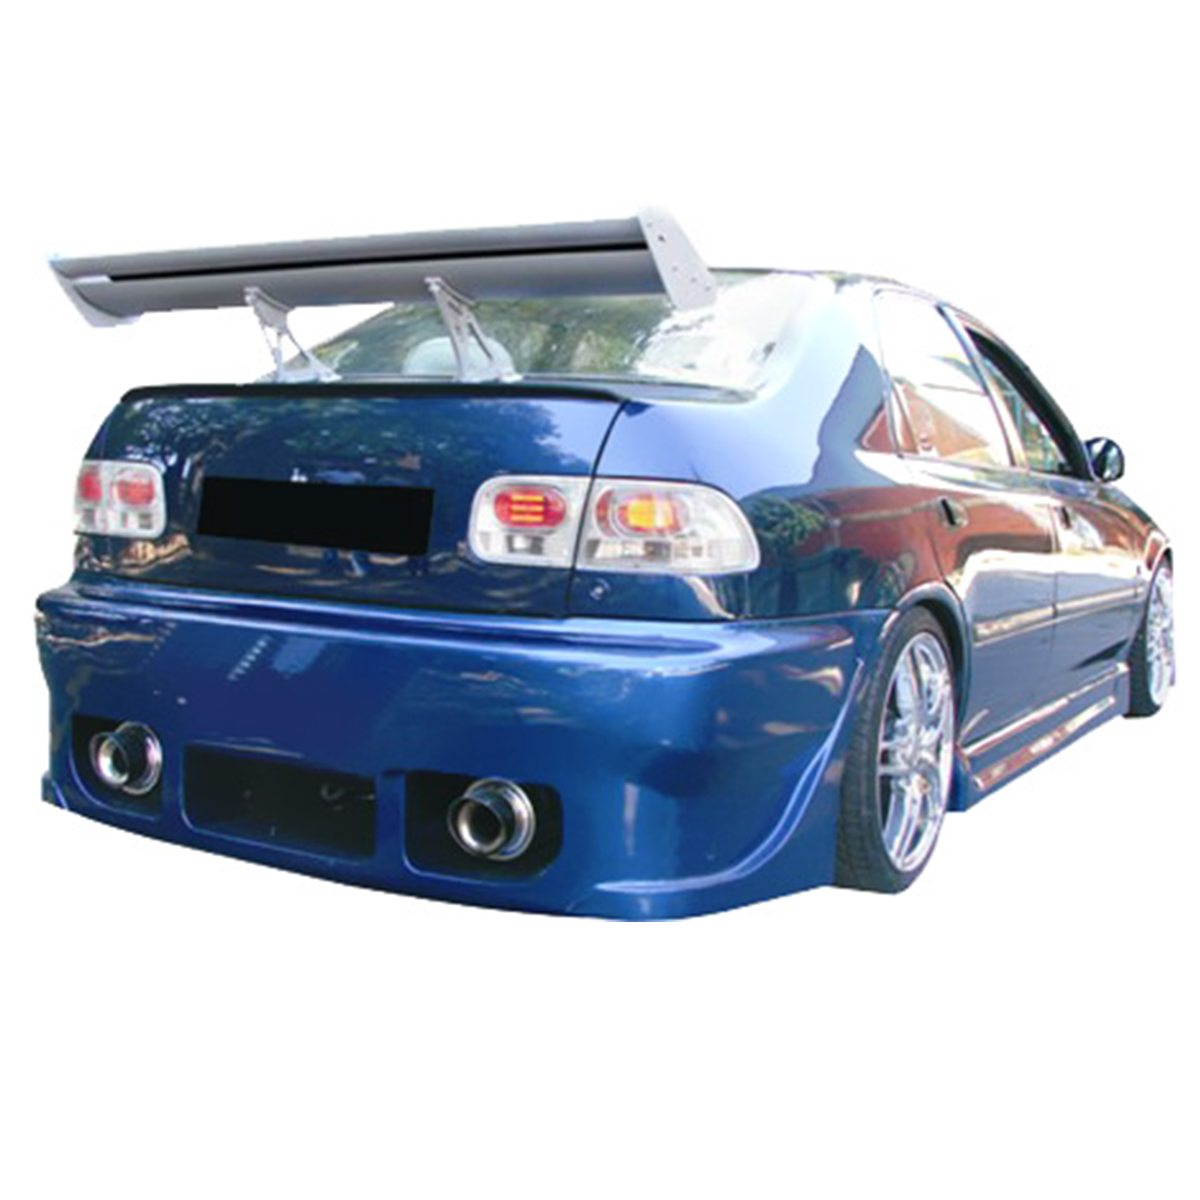 Honda-Civic-92-Tun-Art-Tras-PCR019